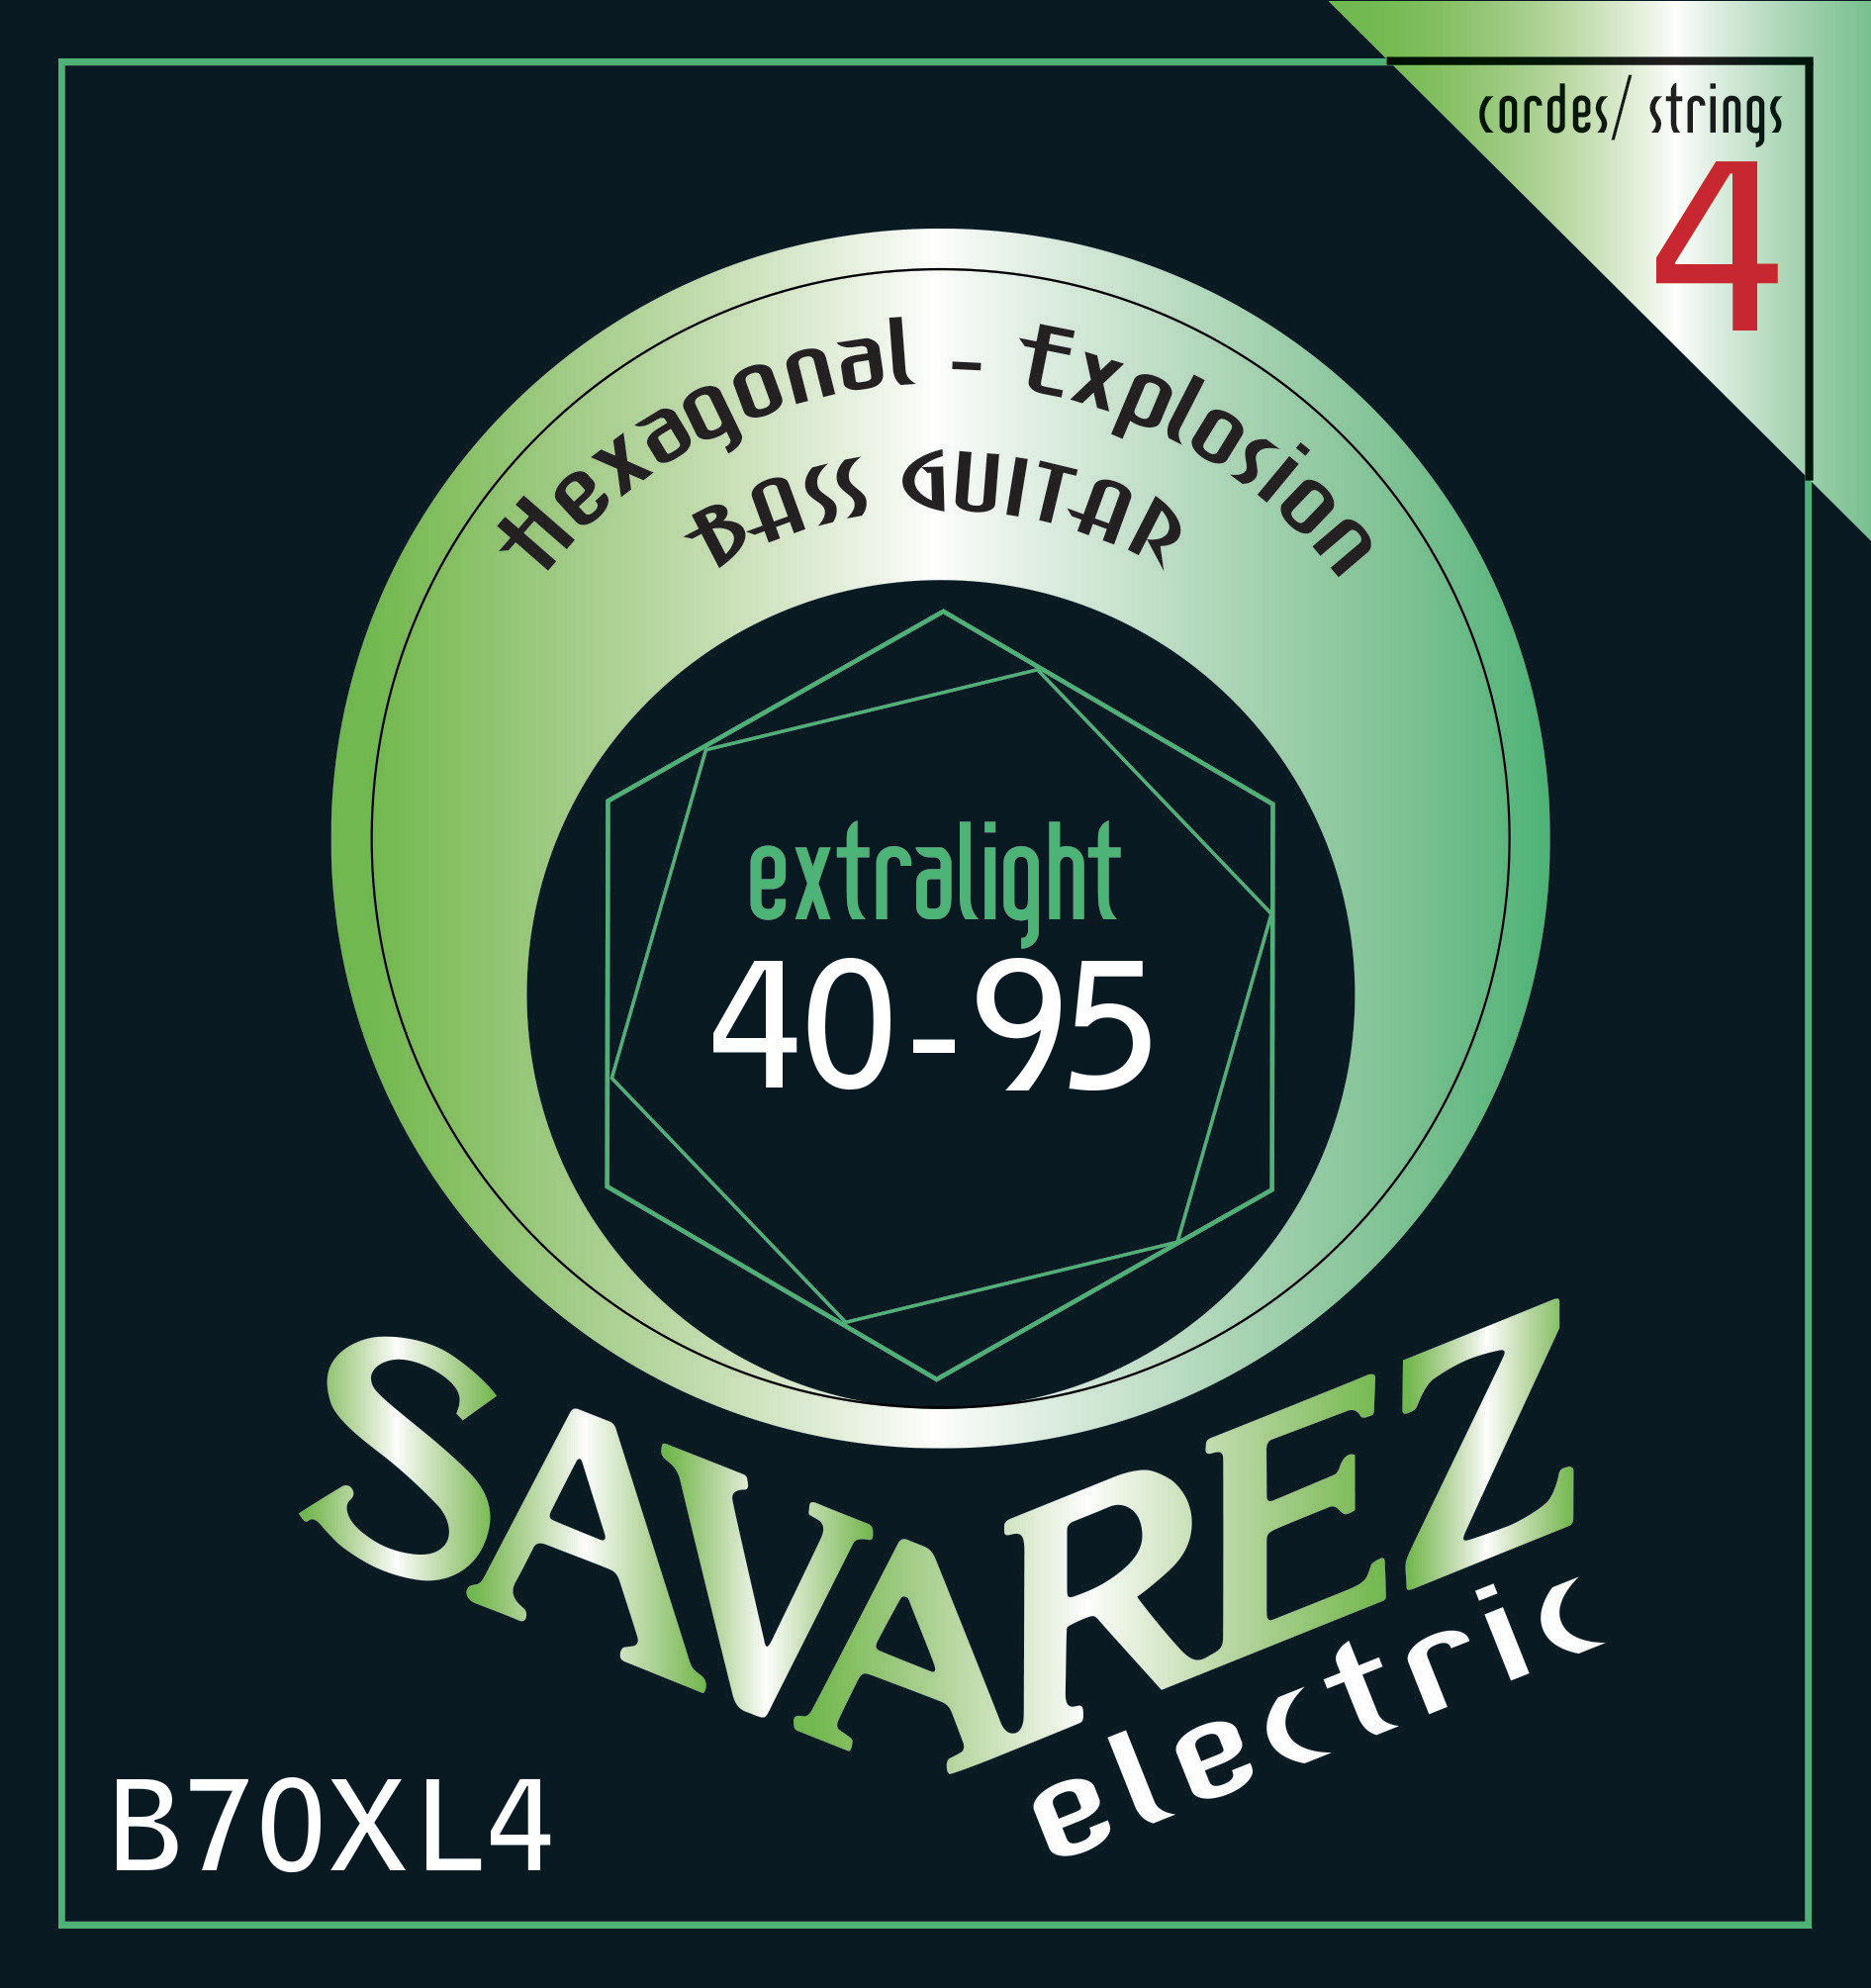 SAVAREZ ELECTRIC HEXAGONAL EXPLOSION BASSE B70XL4